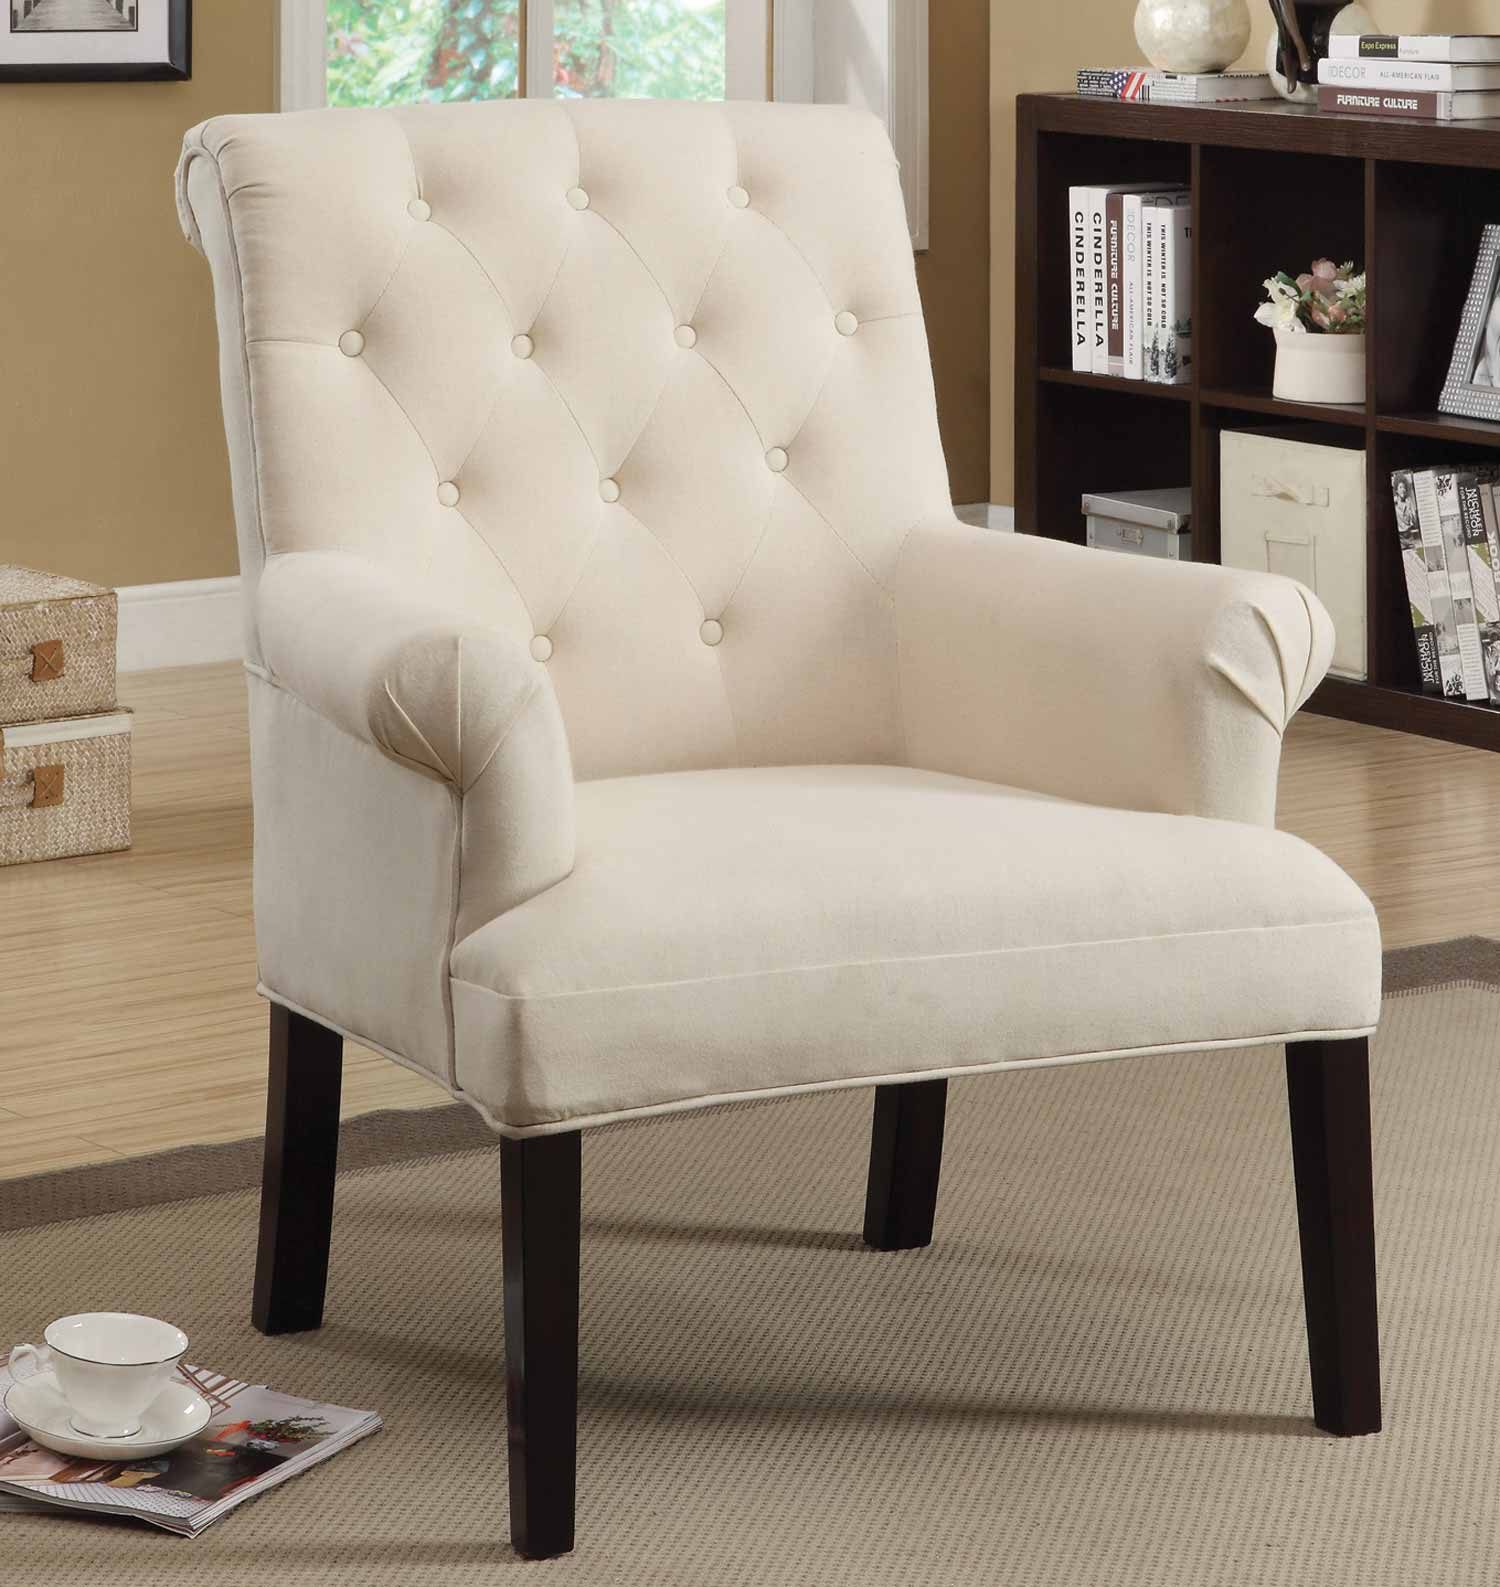 Coaster 902200 Accent Chair - Light Beige